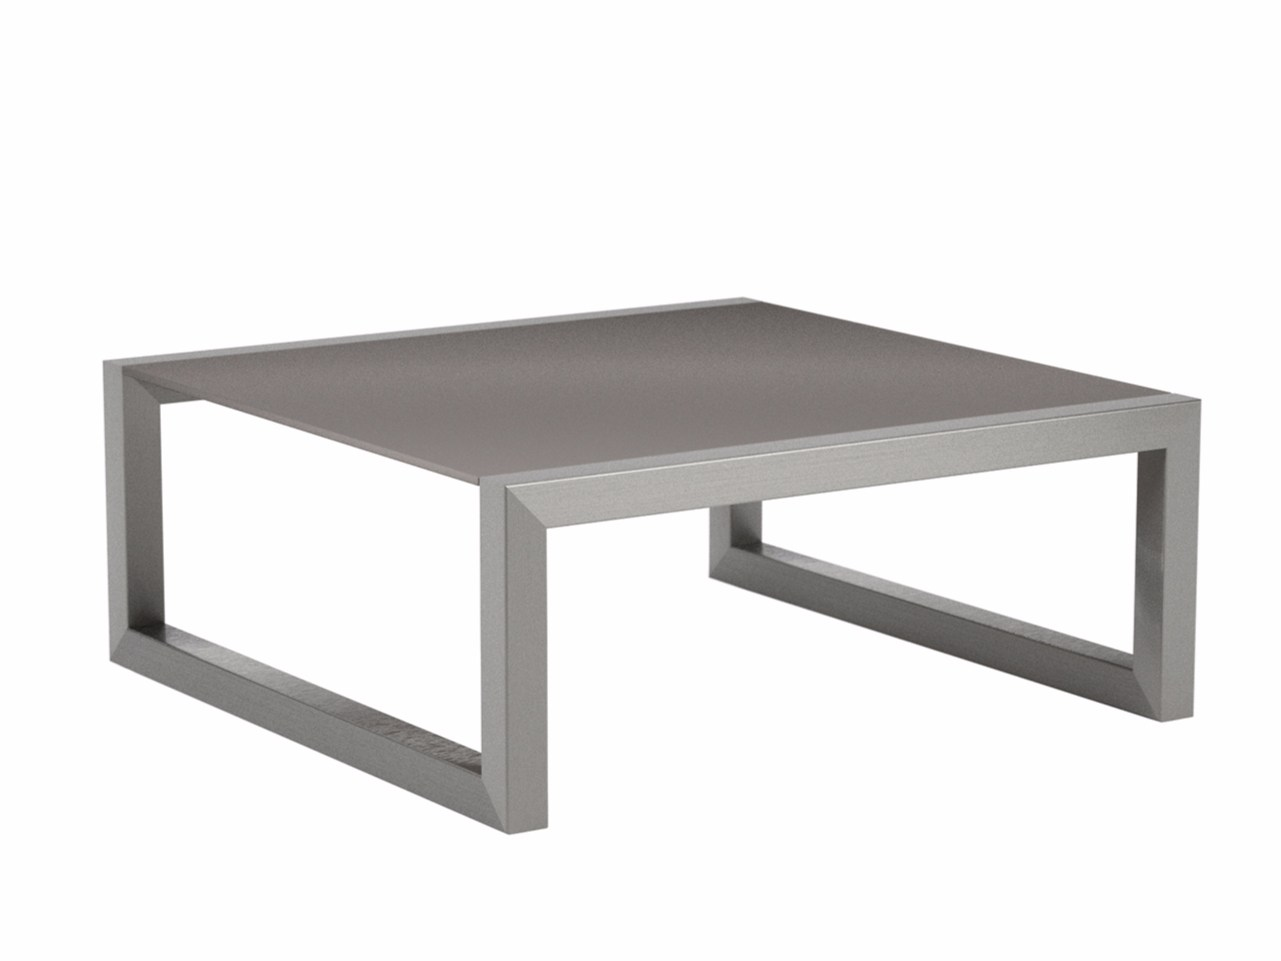 Ninix low coffee table ninix collection by royal botania design kris van puyvelde Low coffee table square